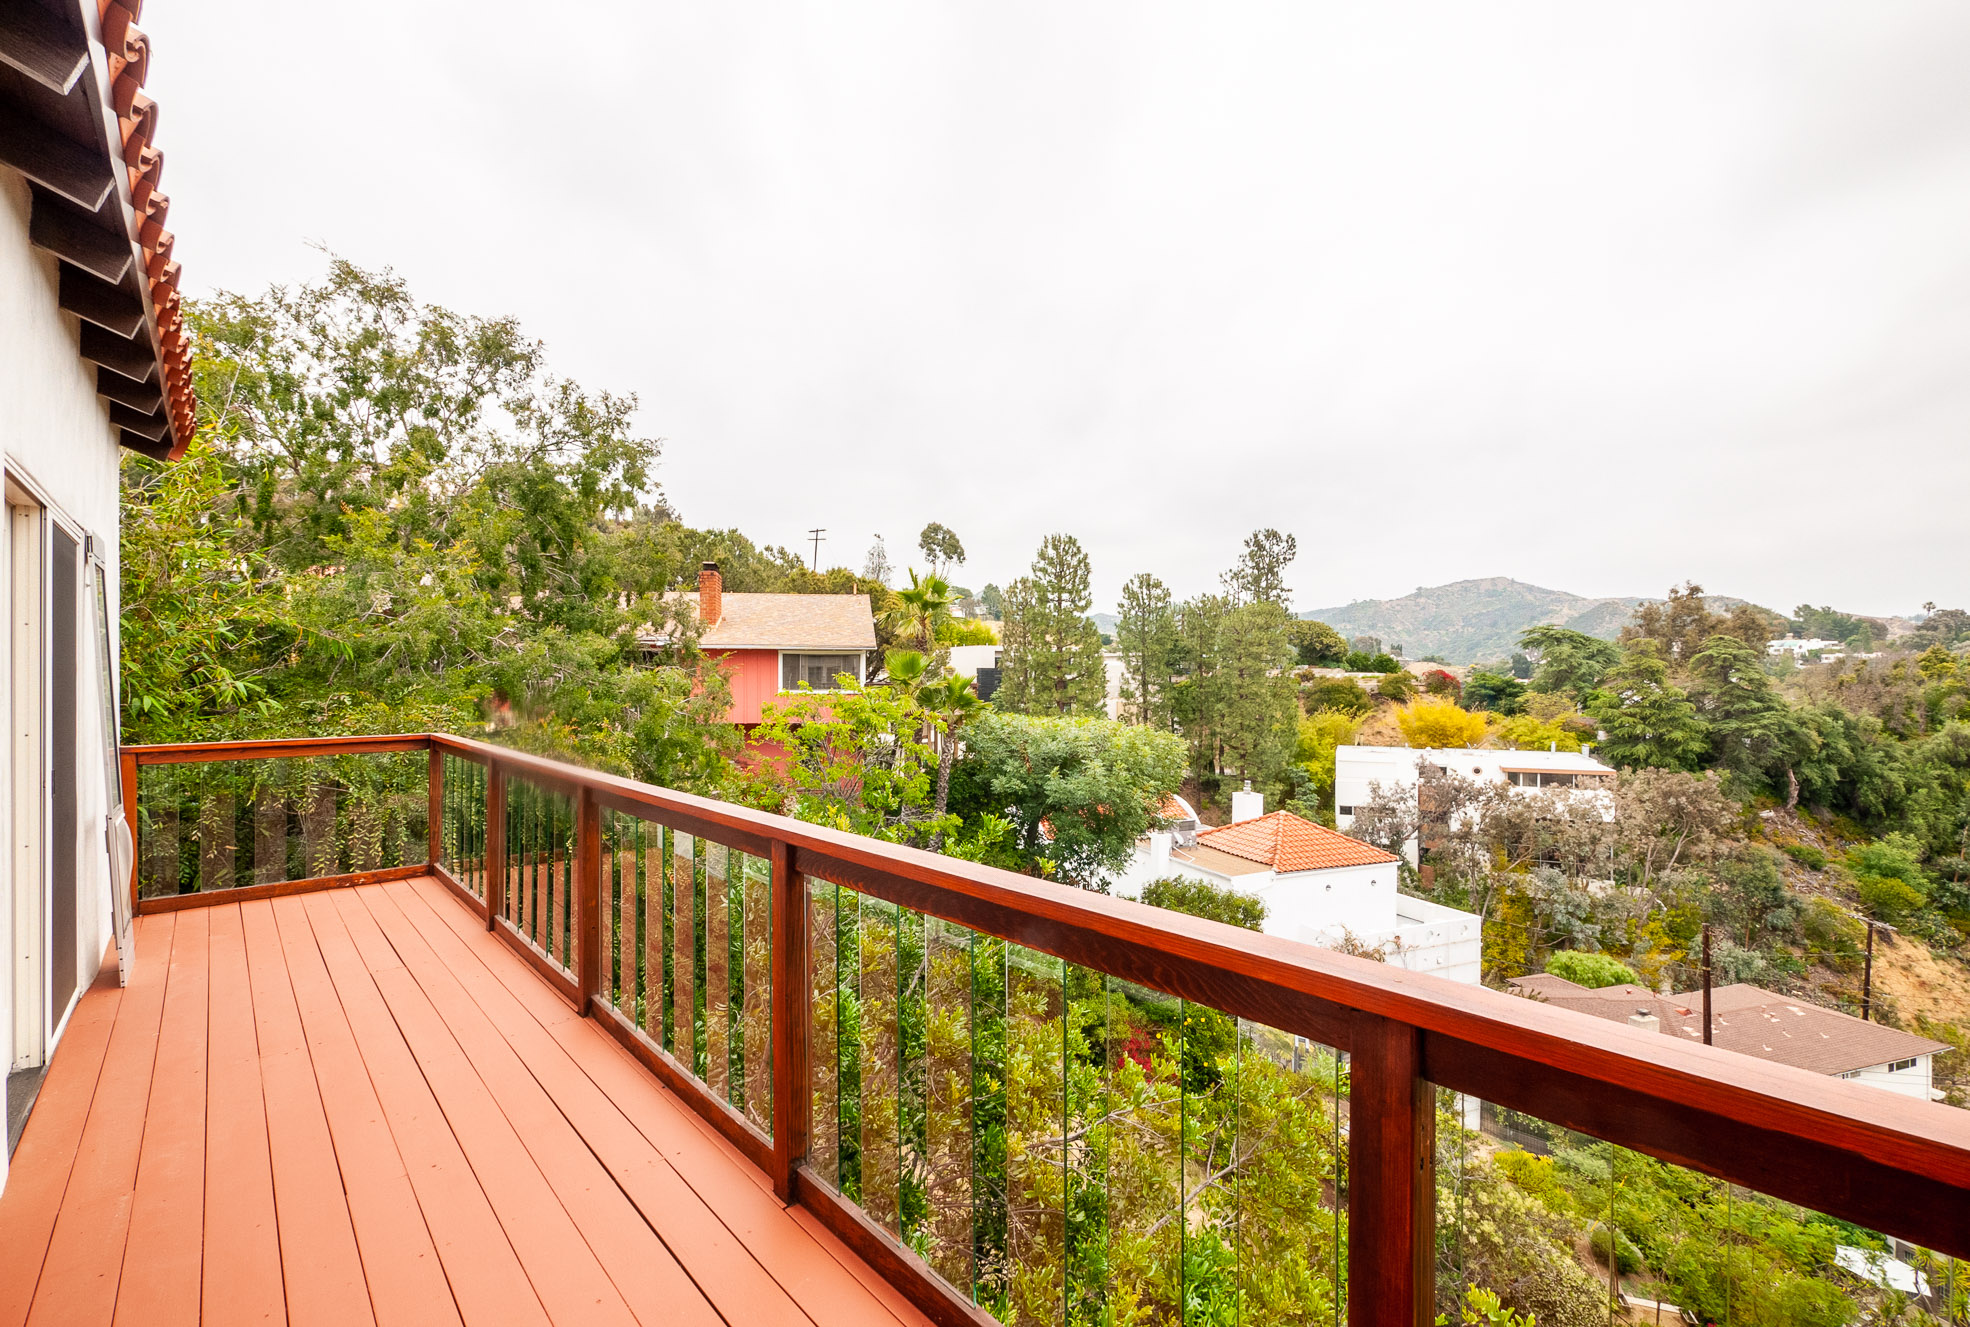 Very Spacious & Bright Home in the Hills! 2 Large Bedrooms, 1 HUGE Downstairs Studio, and Bonus Room!